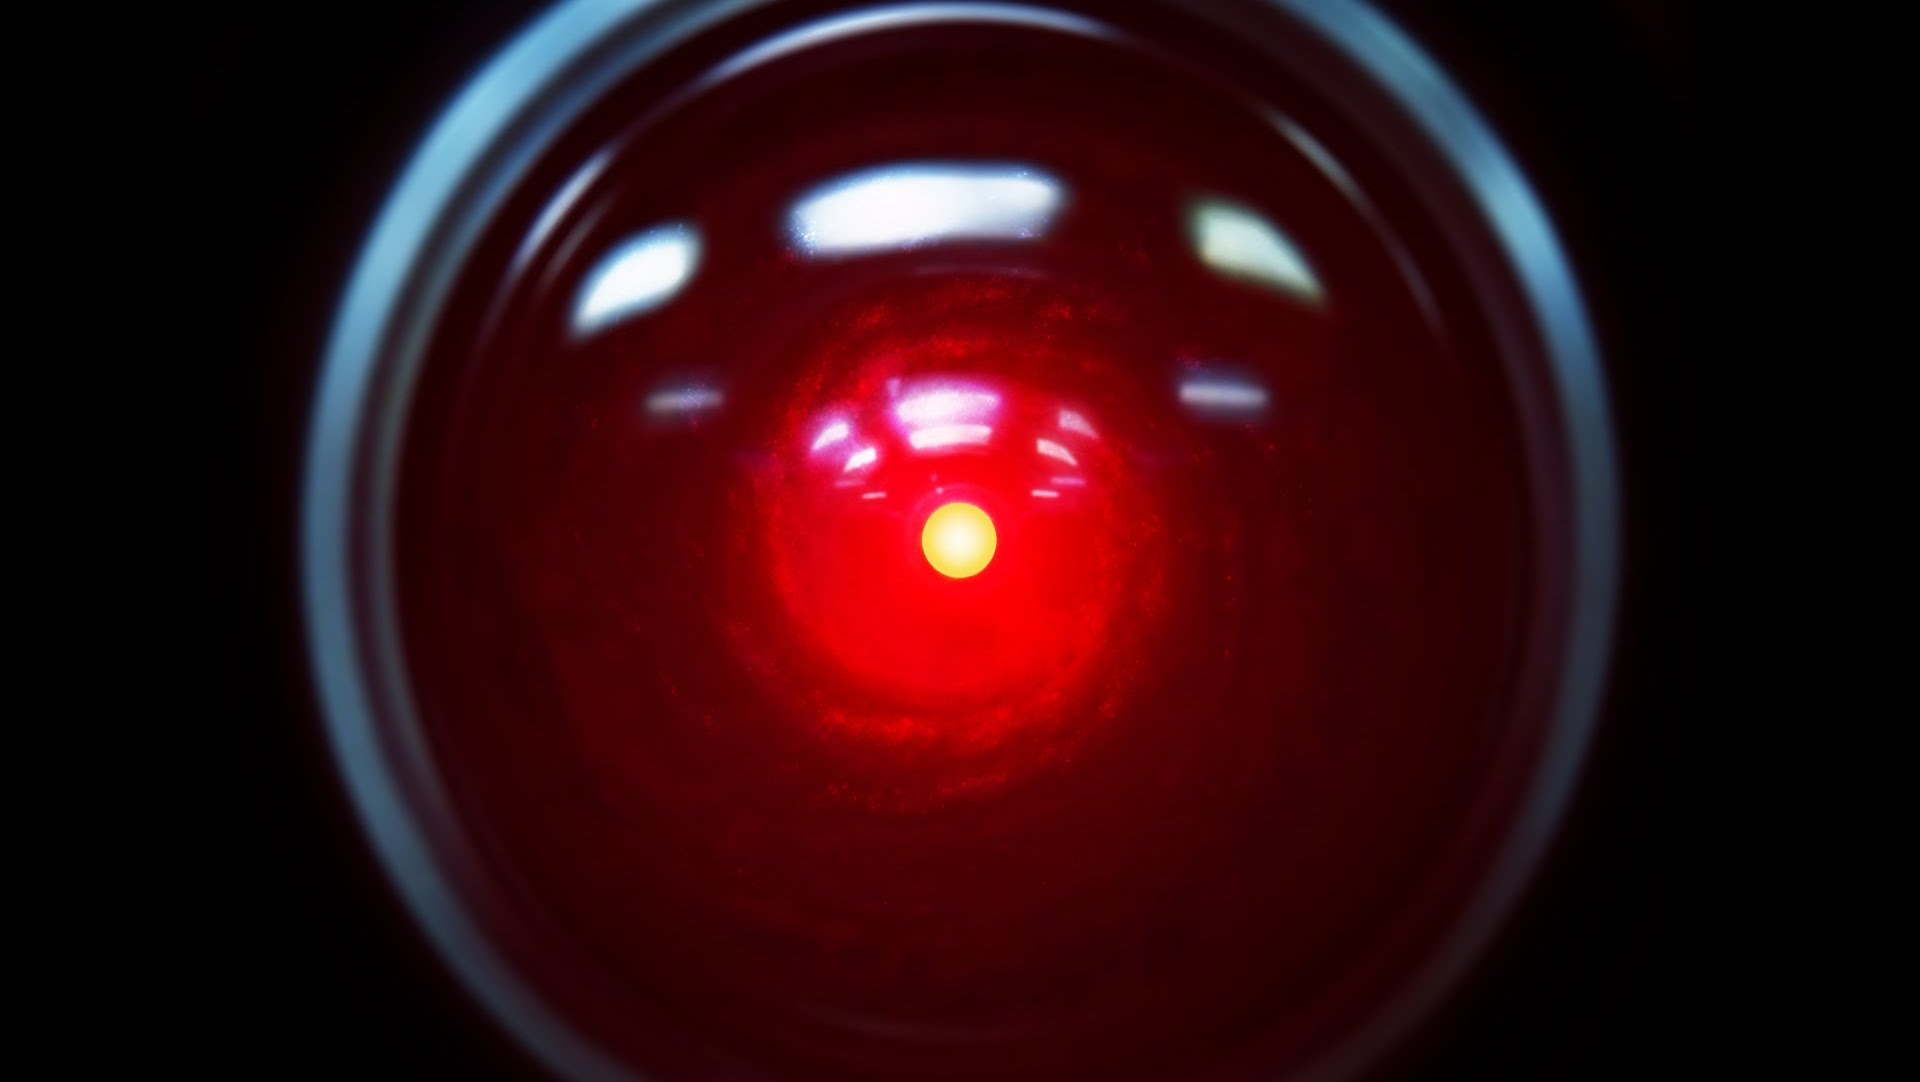 A picture of the HAL 9000 from 2001: A Space Odyssey